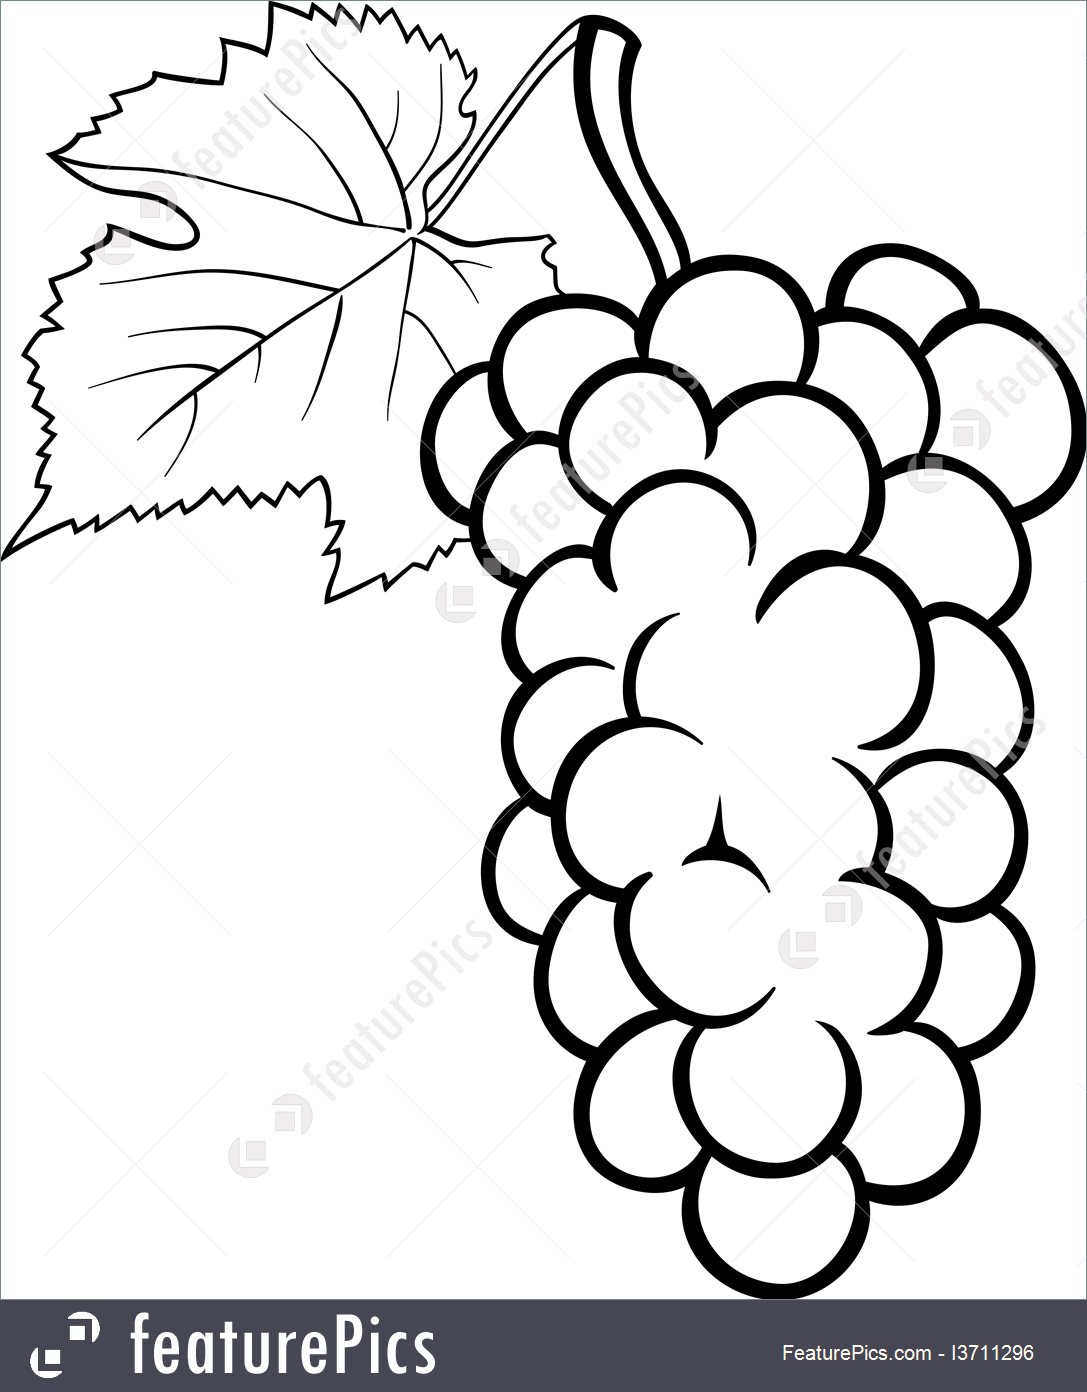 1087x1392 Grapes Design For Coloring Book Illustration